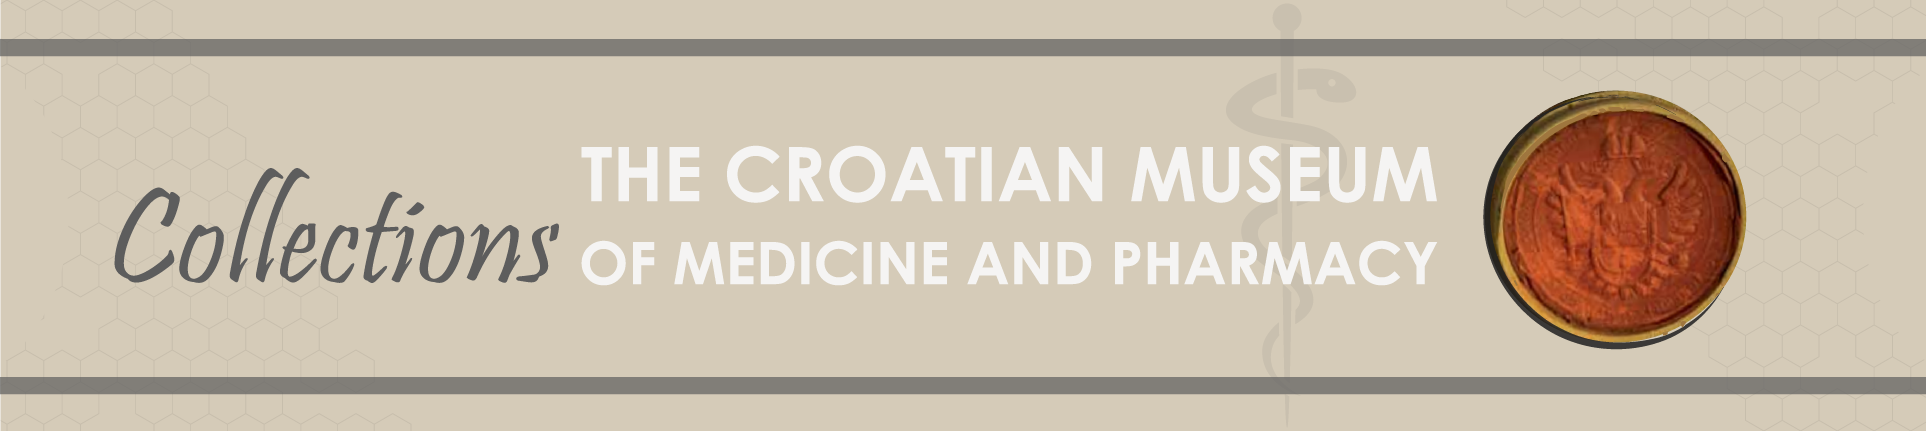 The Croatian Museum of Medicine and Pharmacy - Collections